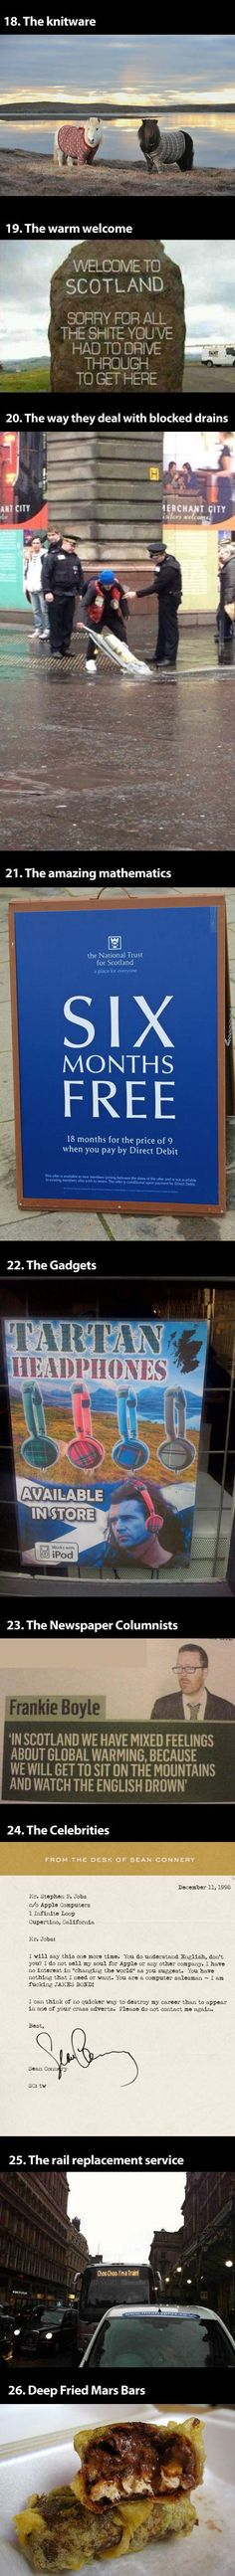 Okay, so I pretty much died when I saw badly photoshopped Mel Gibson in tartan headphones. I NEED to go to Scotland!